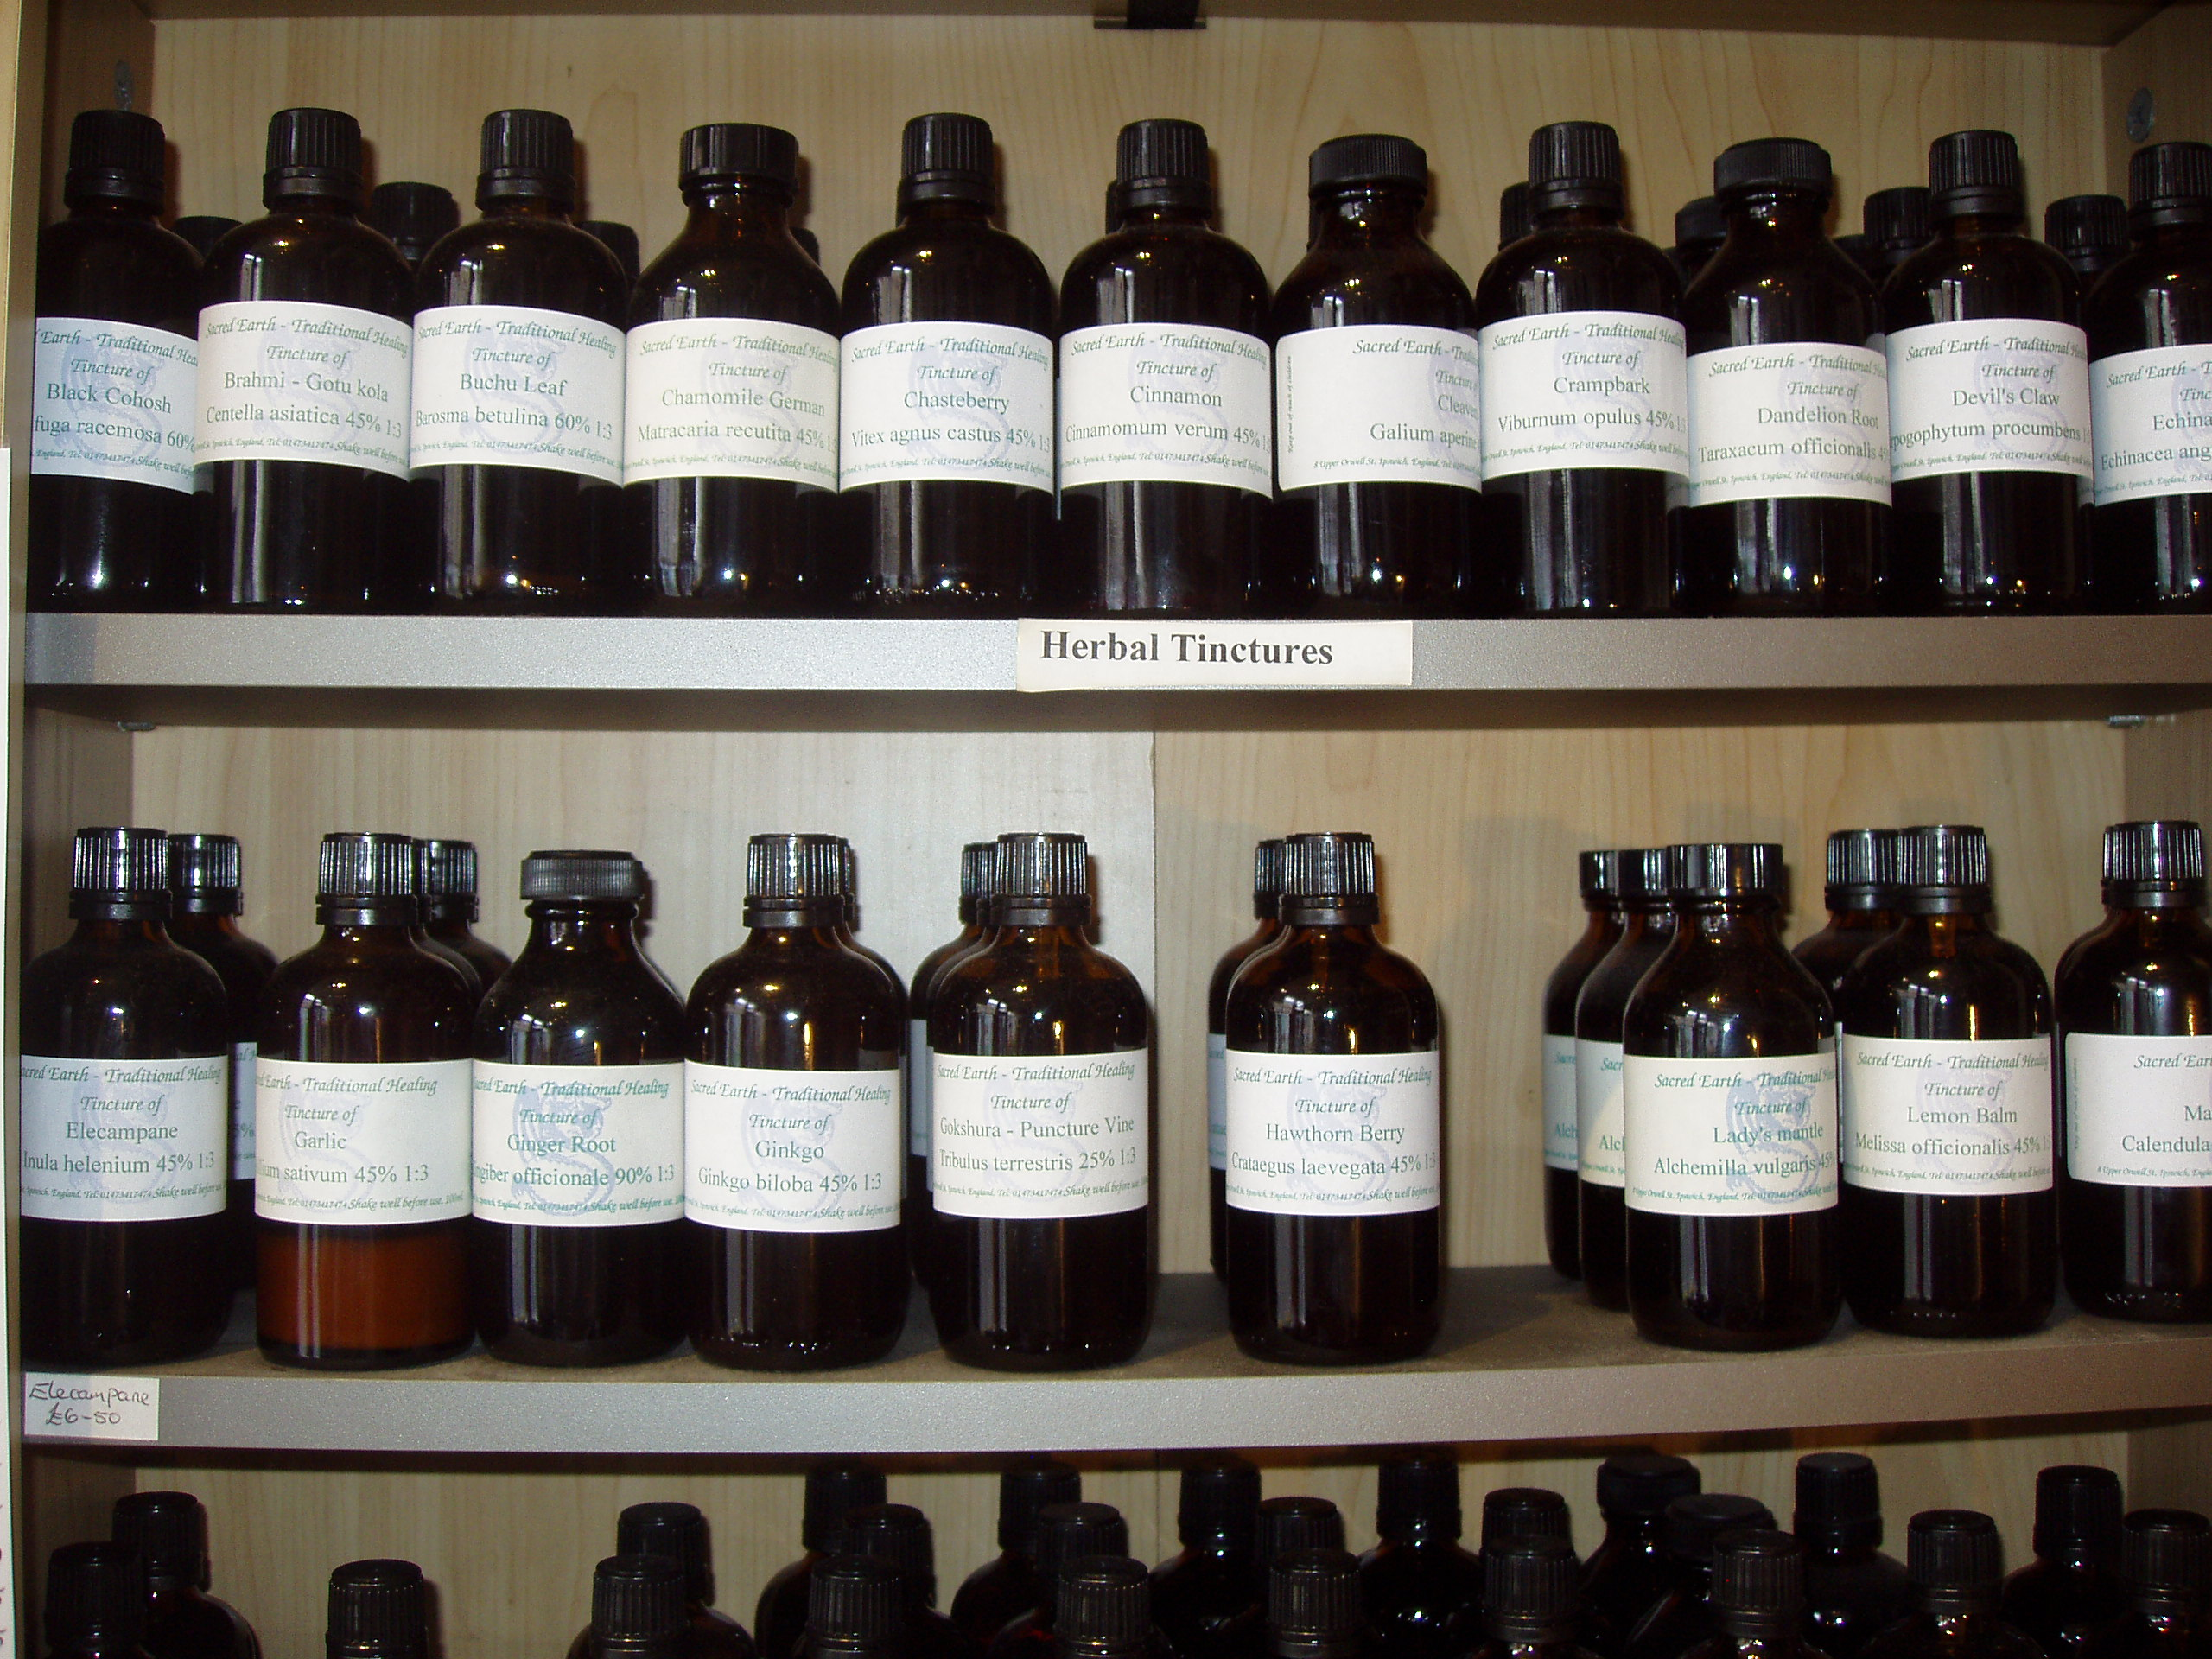 Herbal Tinctures (Mixes) - Immune System Enhancer.